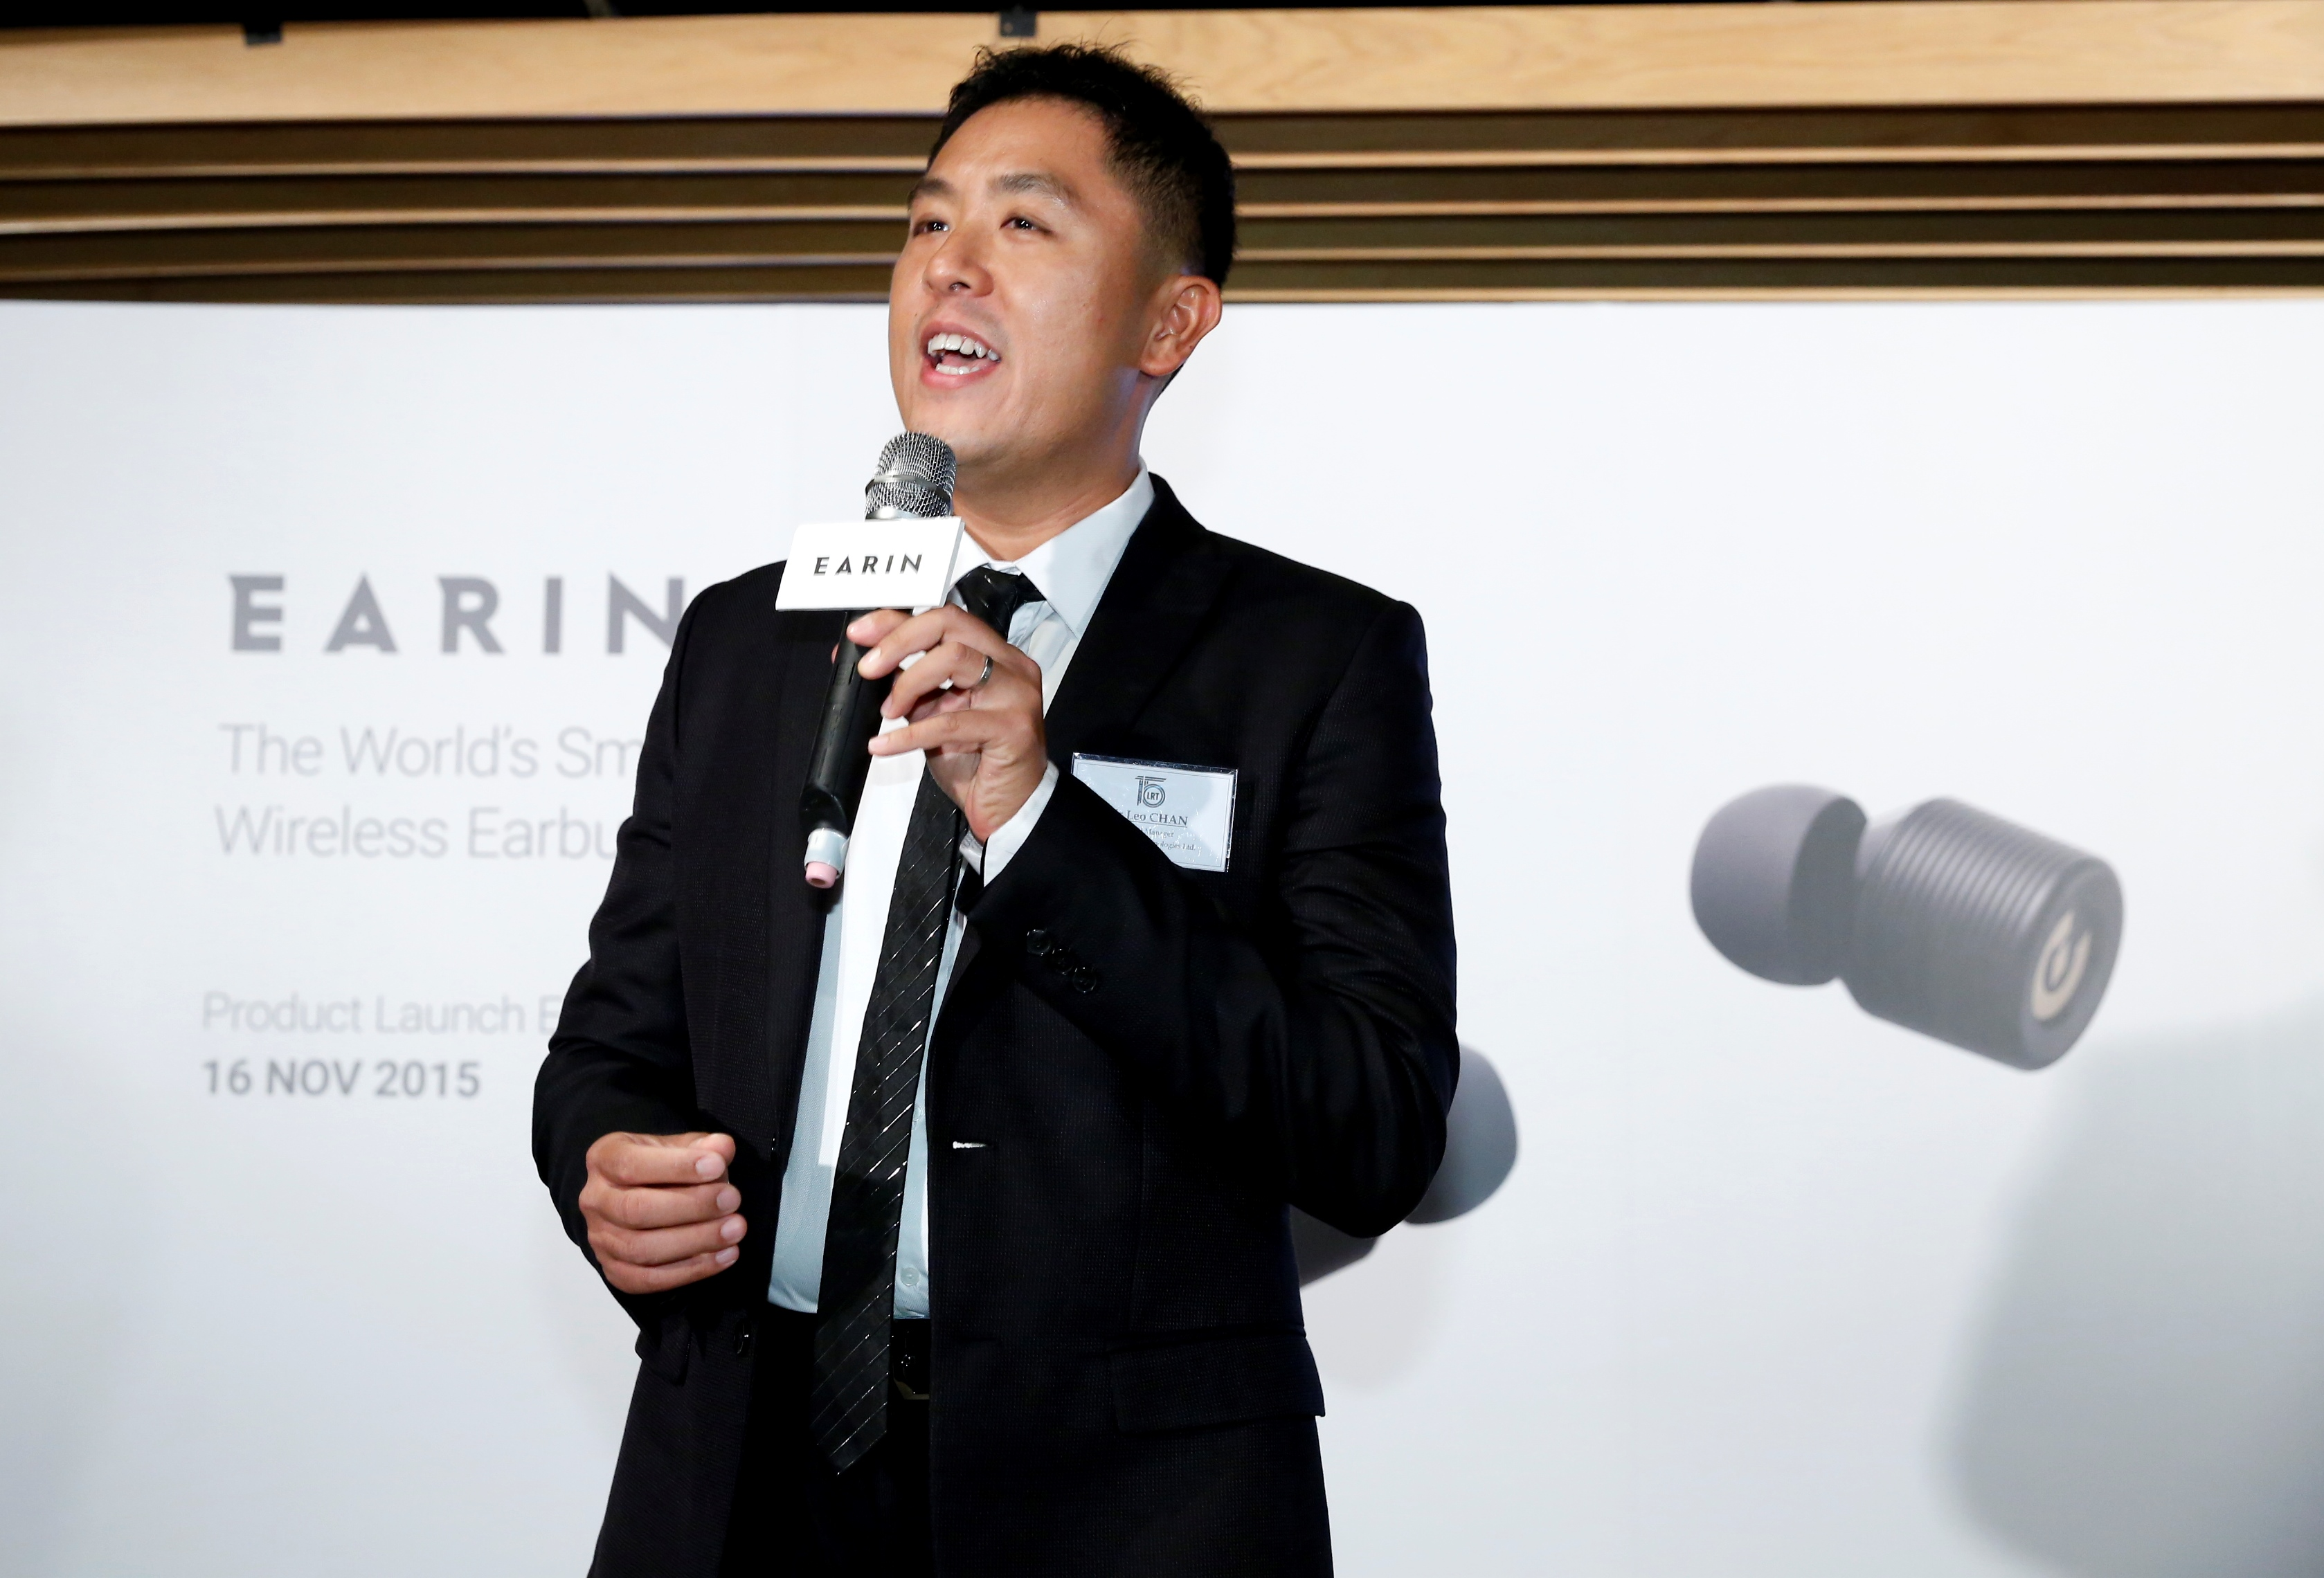 Mr Leo Chan, General Manager, Leader Radio Technologies Ltd.